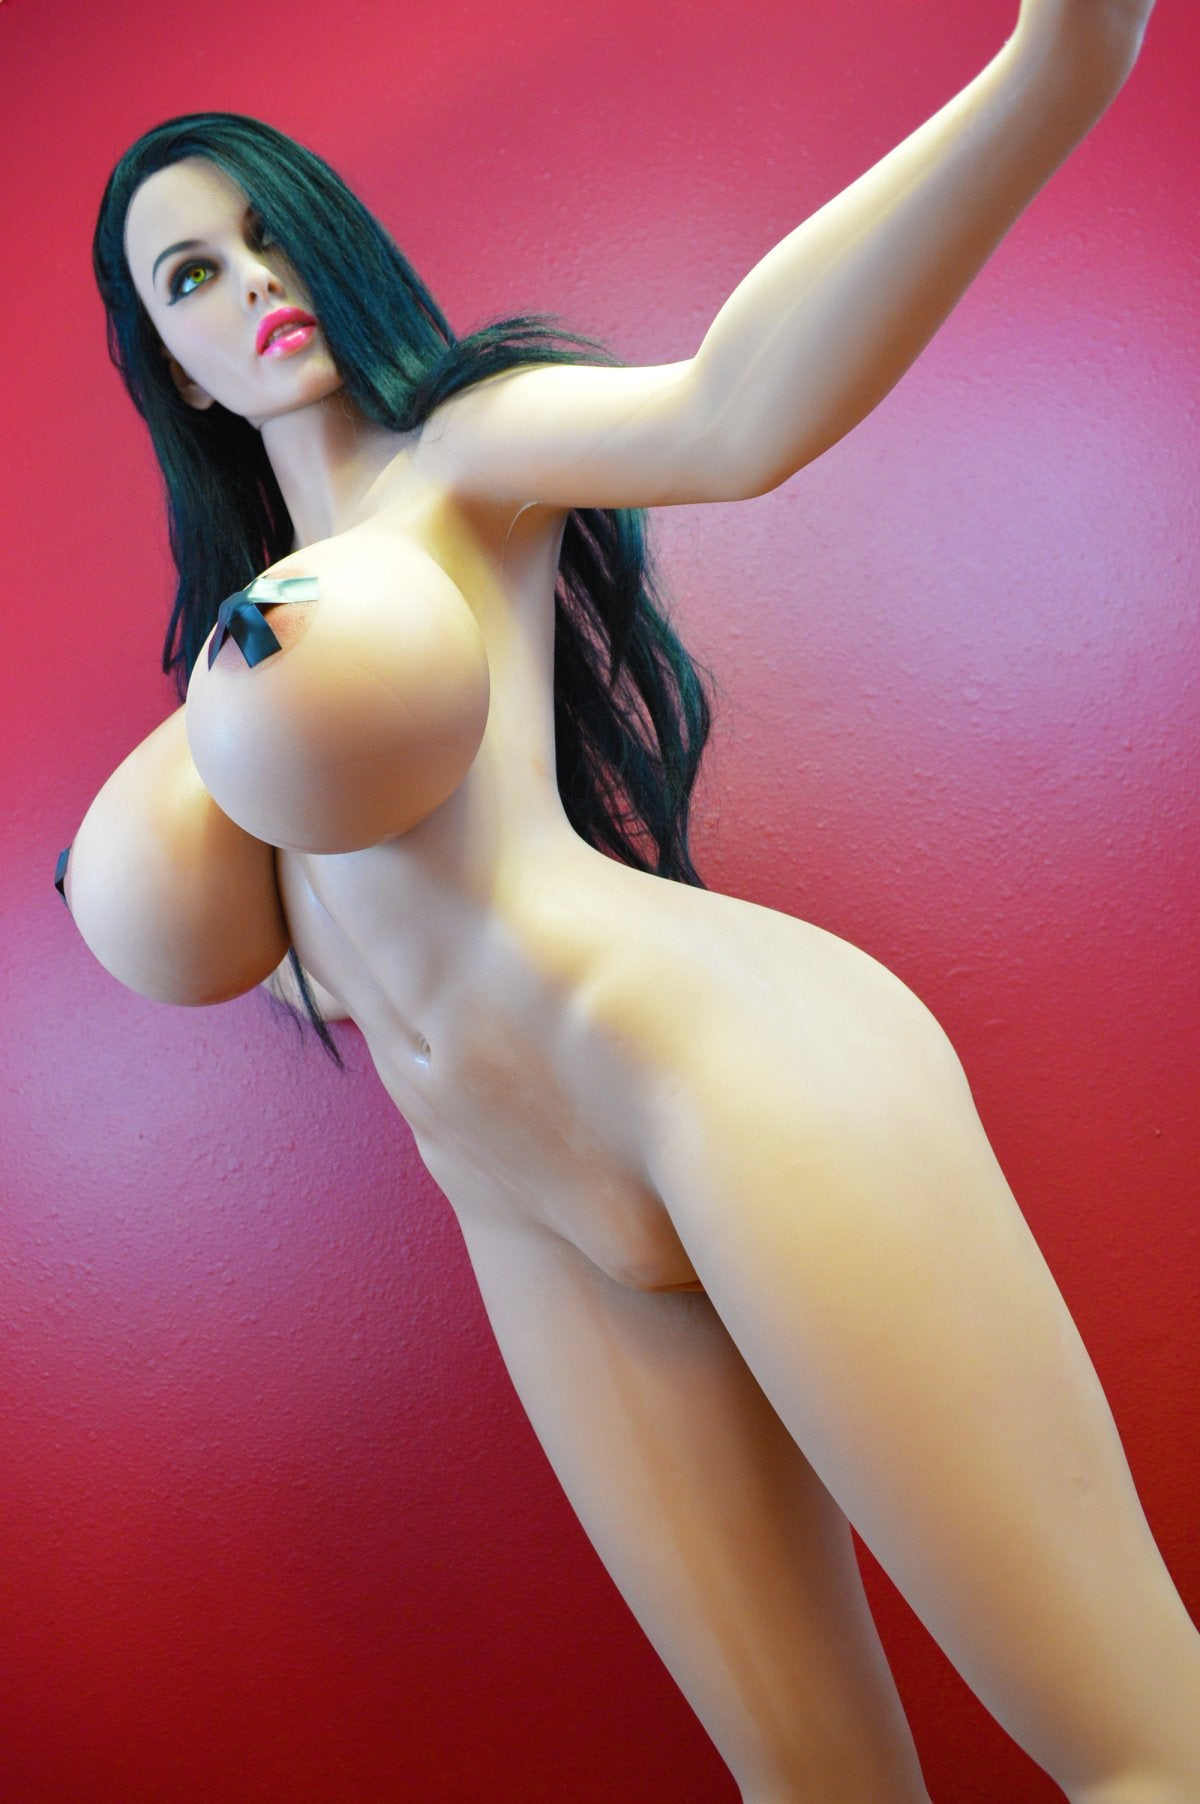 alley 170cm black hair giant massive tits athletic tpe wm sex doll(9)